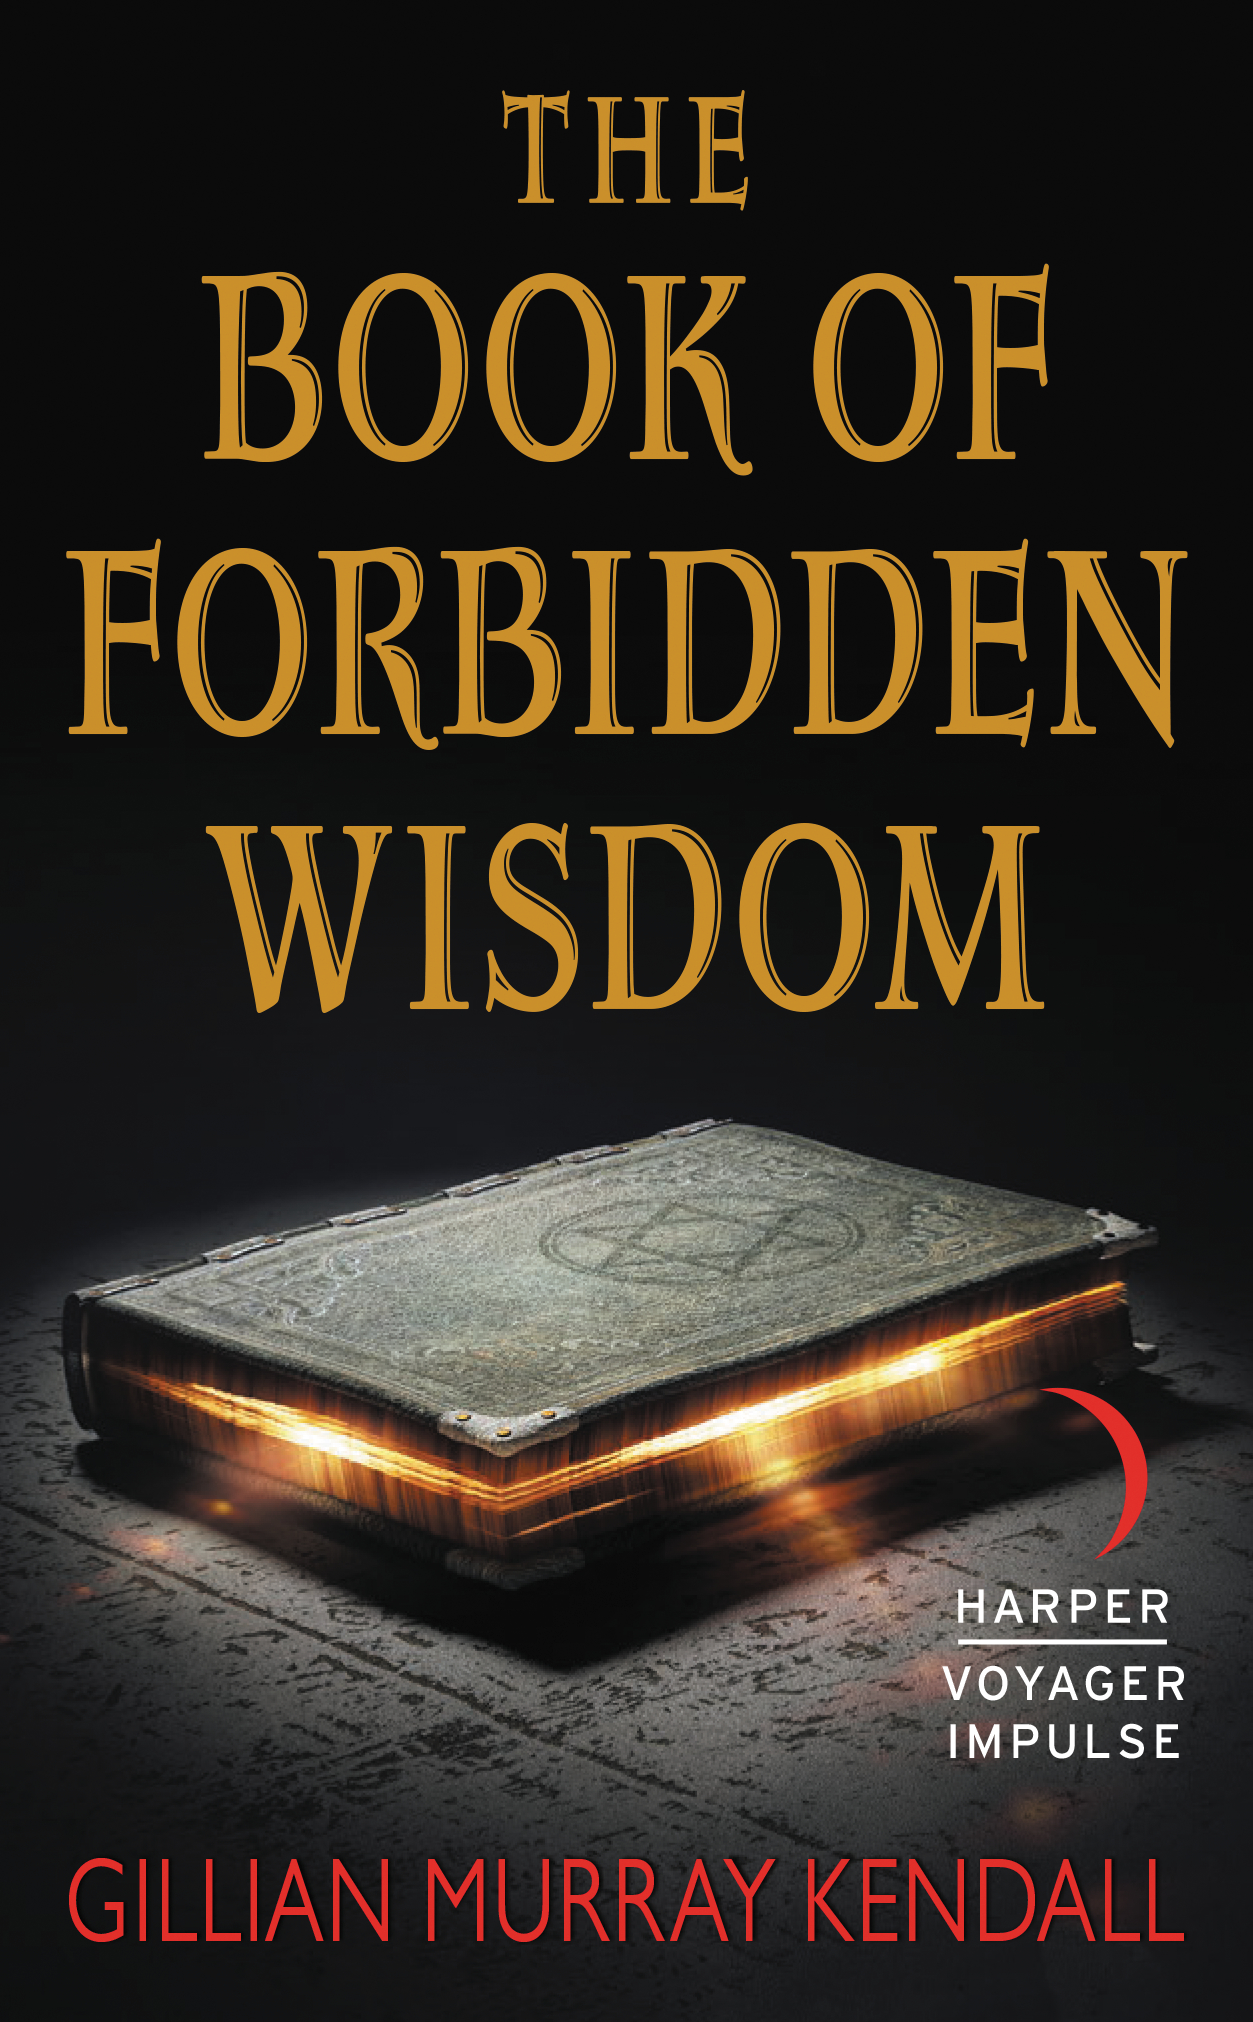 The Book of Forbidden Wisdom